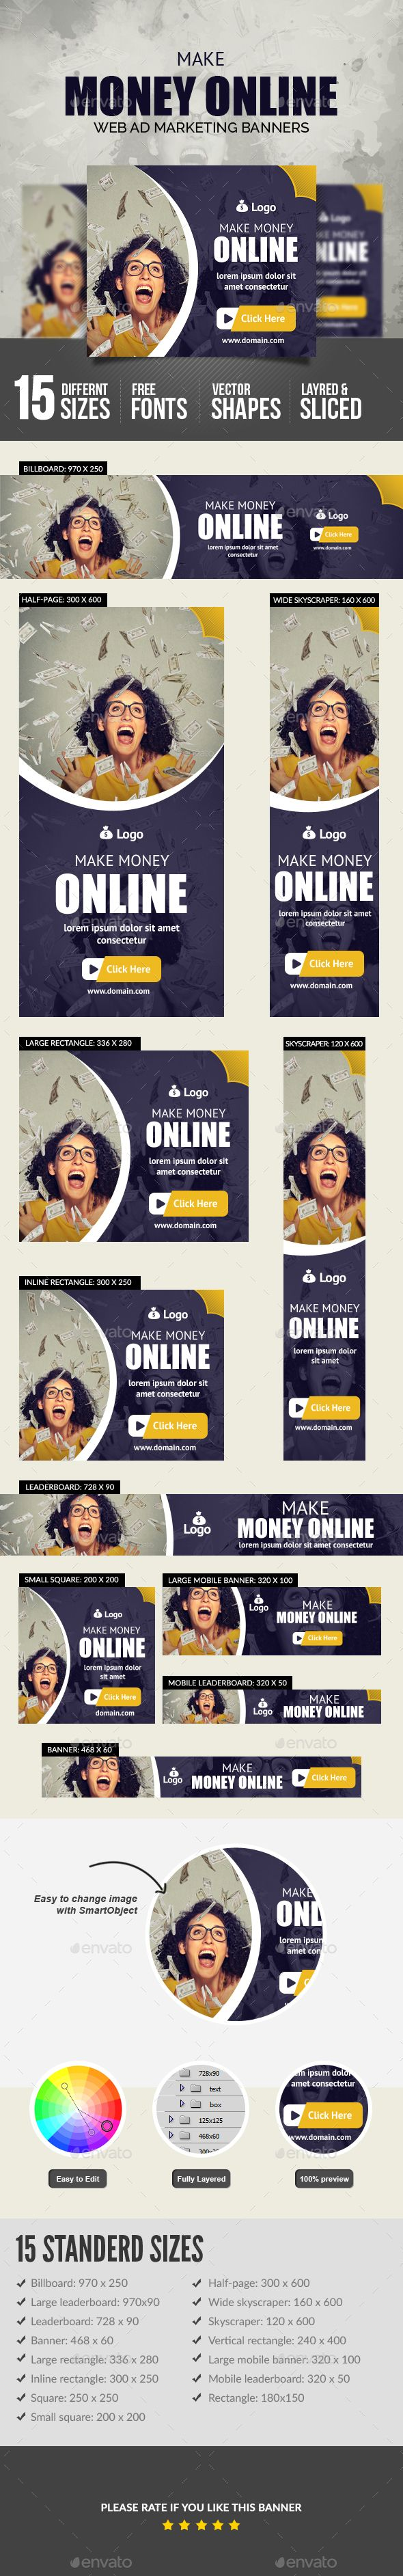 Make Money Online Banners Template PSD #ads